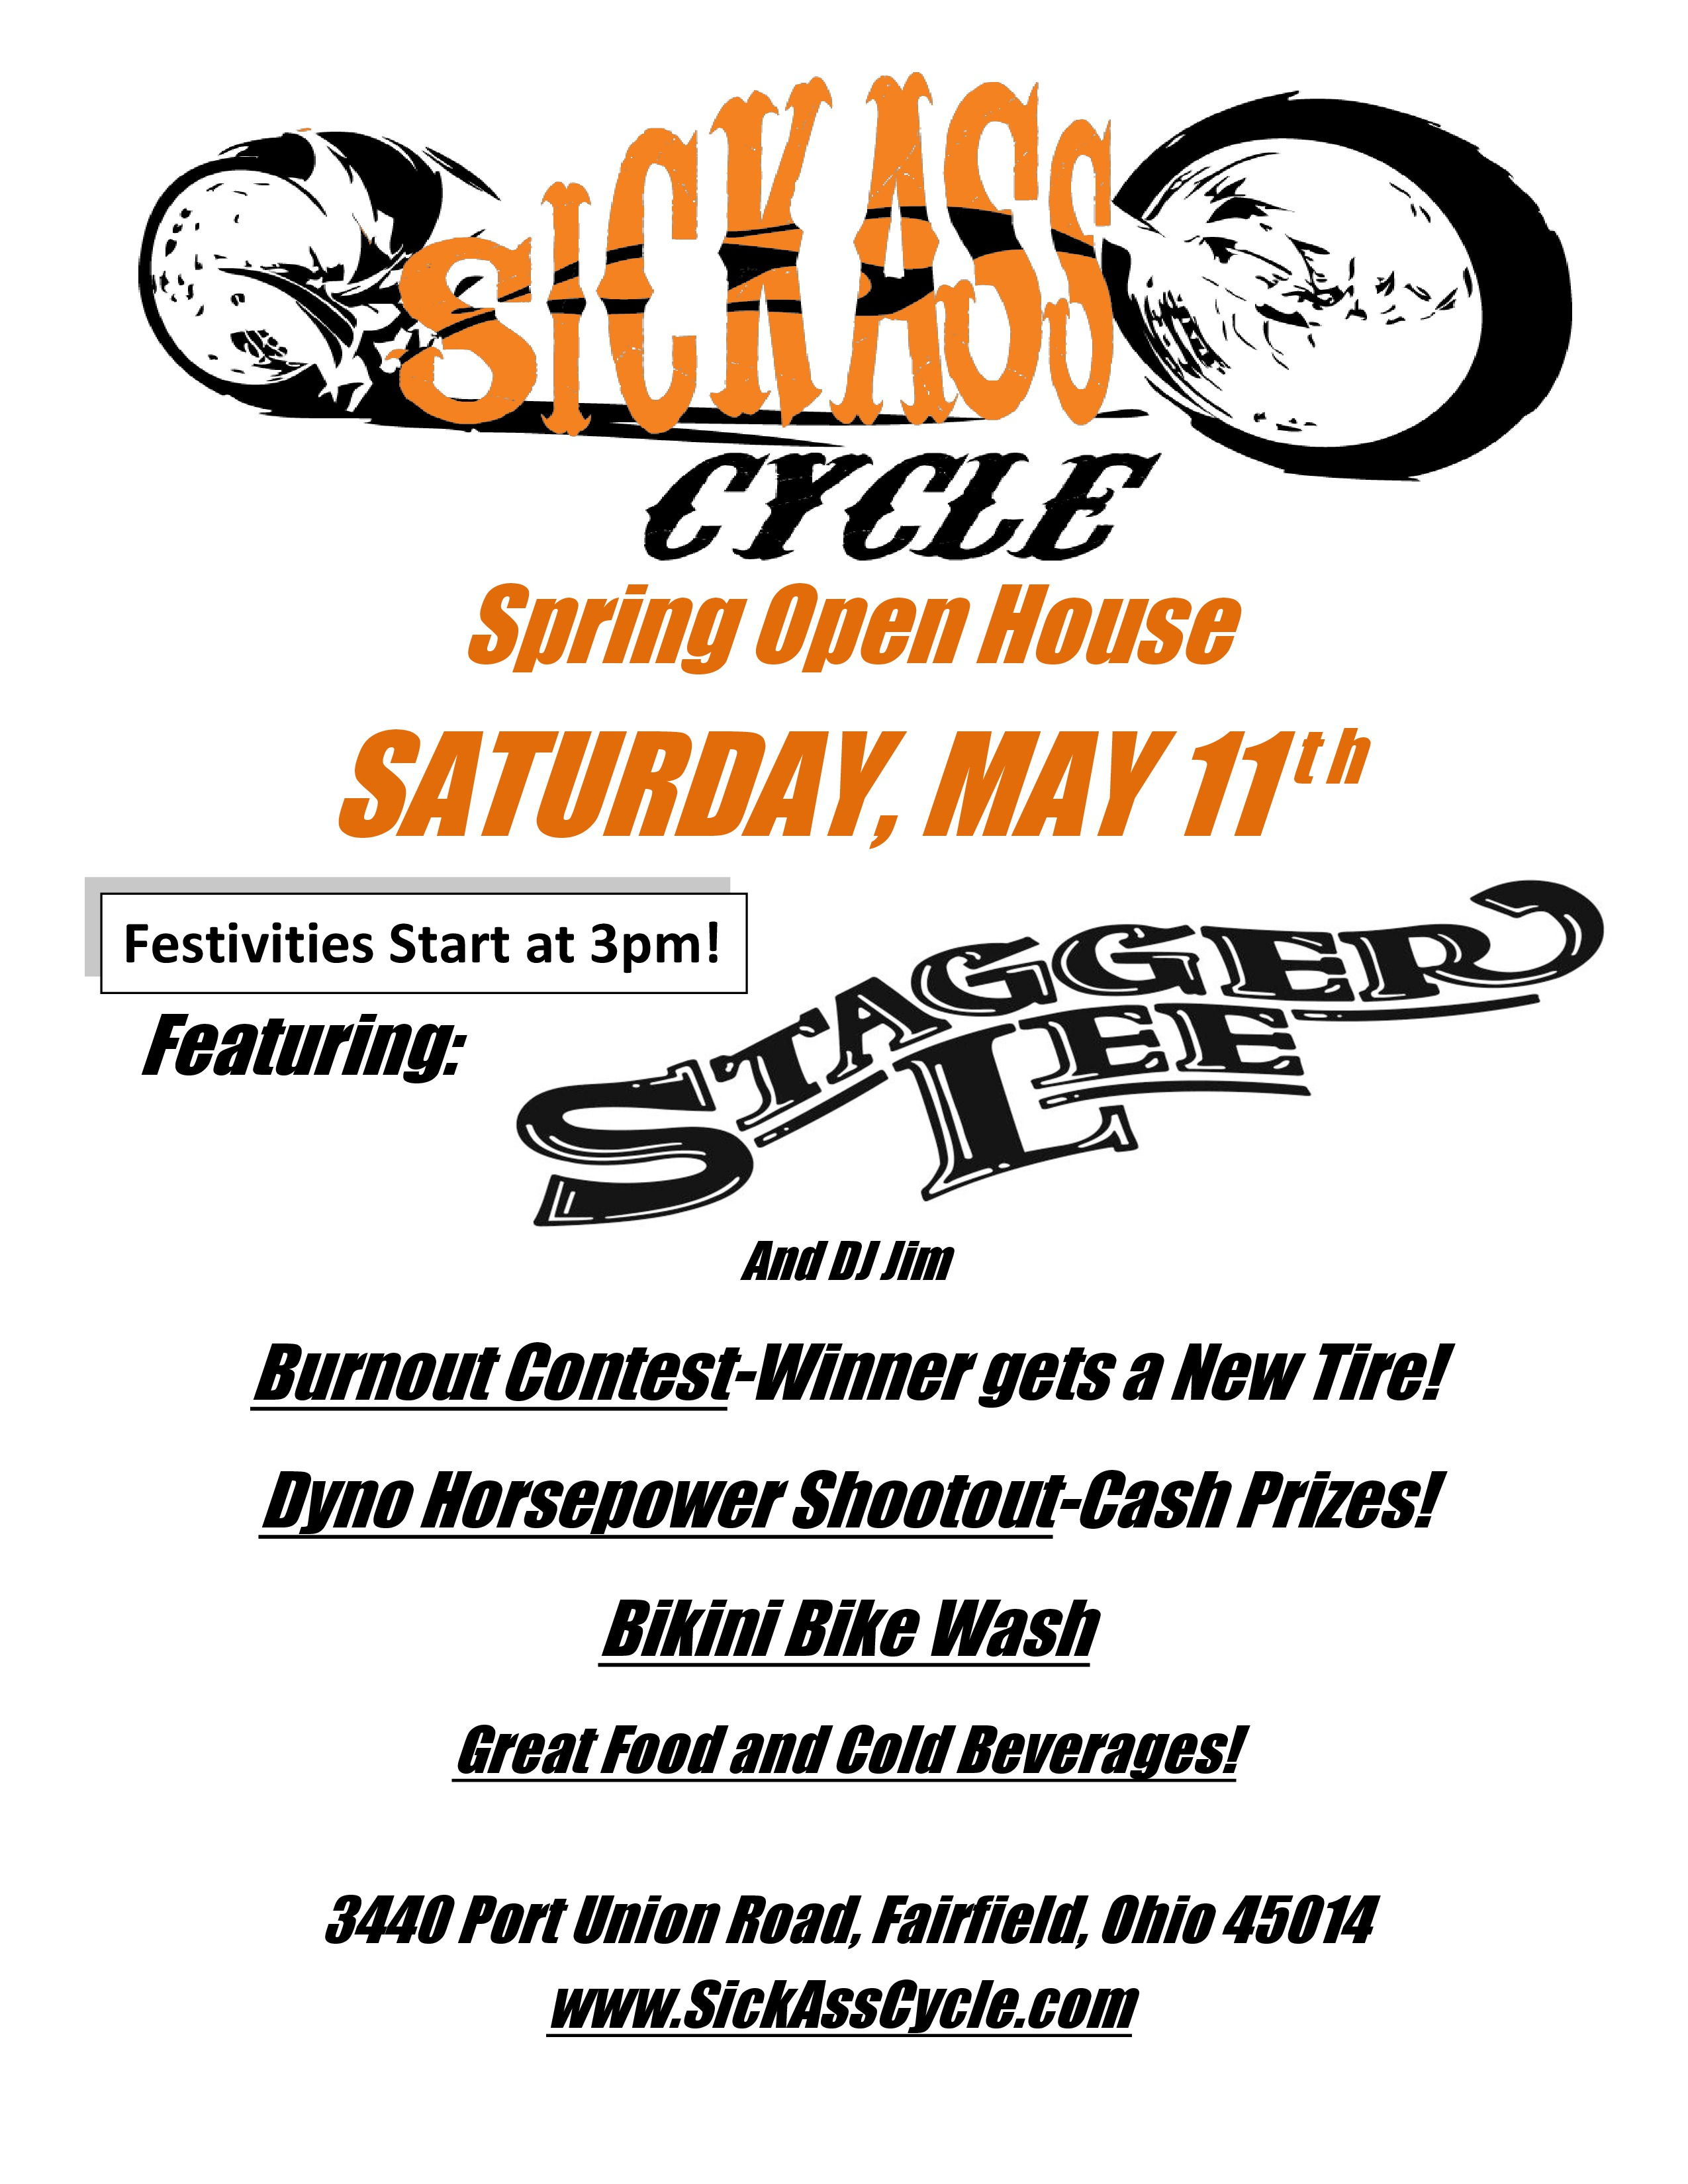 open house flyer now available sick ass cycle sick ass spring open house flyer aka page 0 2